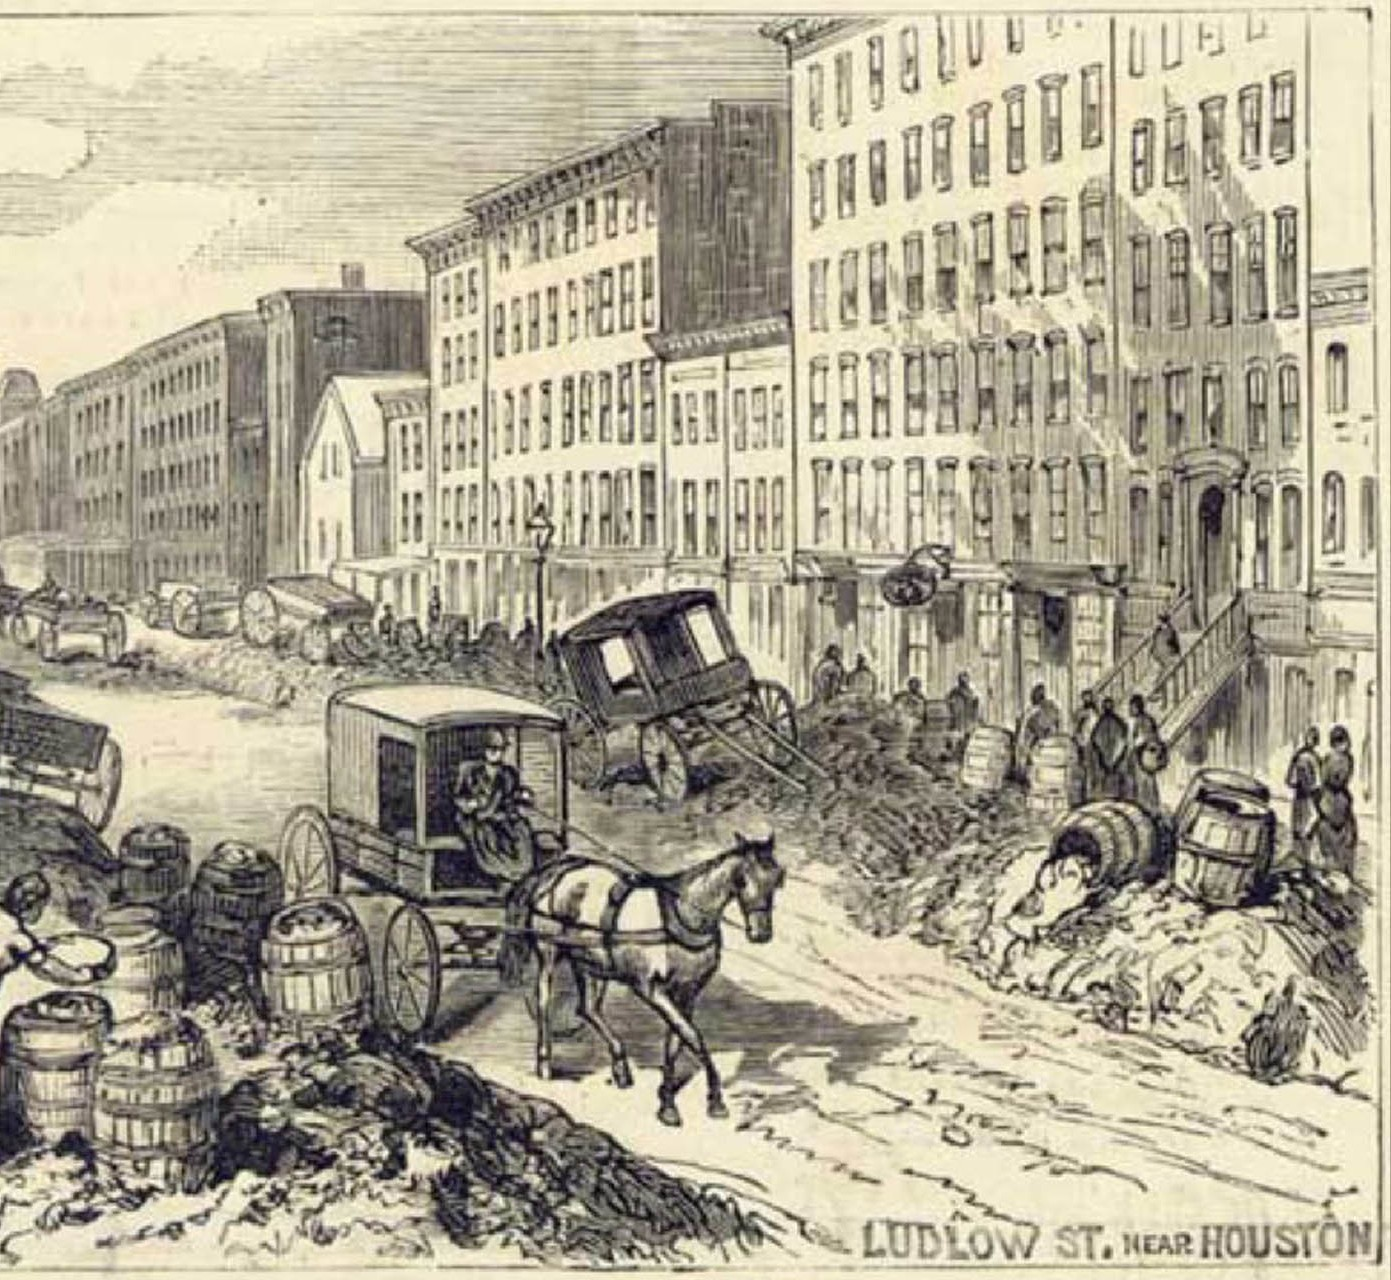 Old horse-drawn wagons and people trying to make their way around piles of garbage piled in front of buildings down a busy street